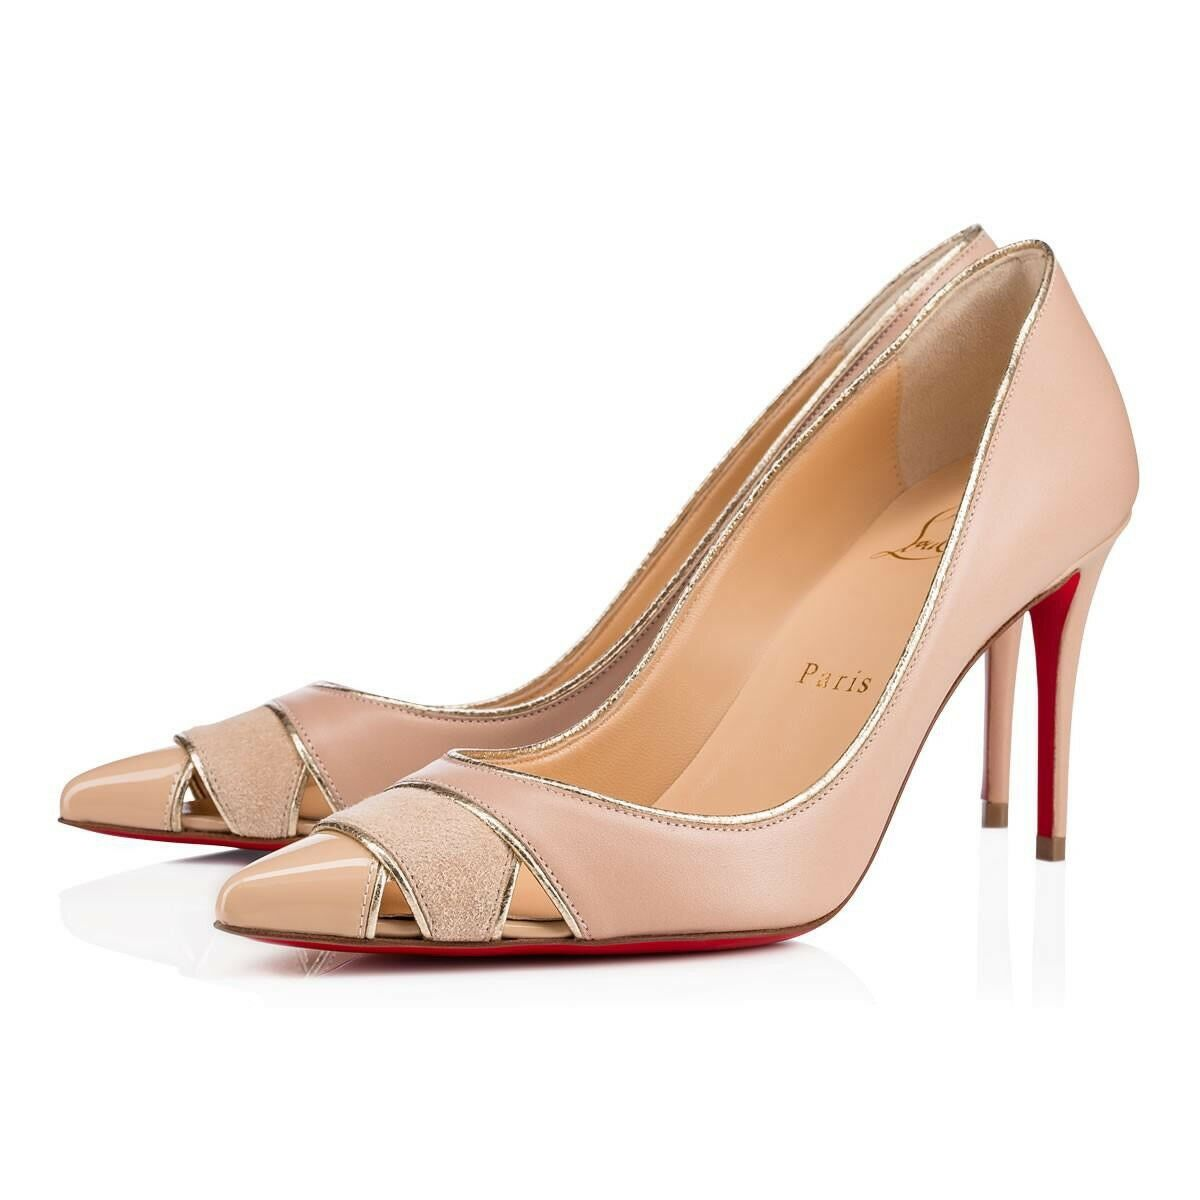 New Christian Louboutin Biblio Leather & Suede 85mm Pumps Taille Taille Taille 36EU 6US  775.00 bebefd